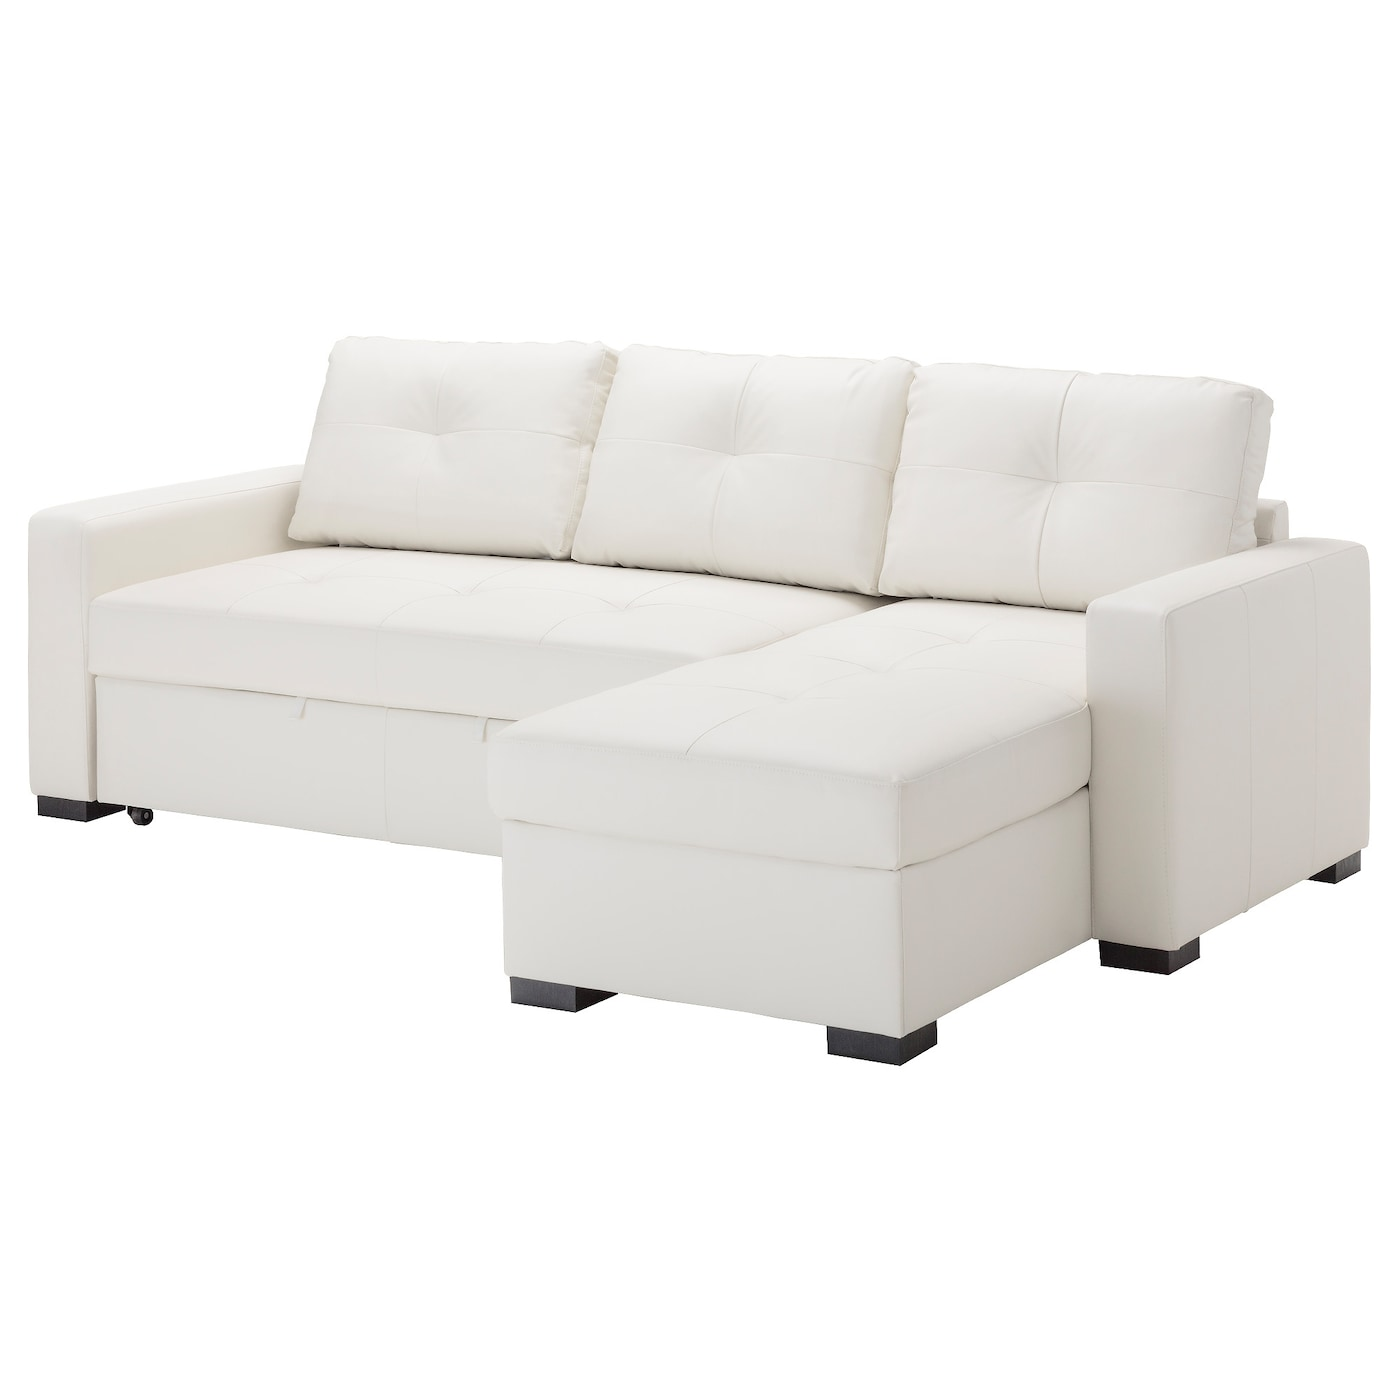 Ikea Ragunda Corner Sofa Bed With Storage Chaise Longue And Double In